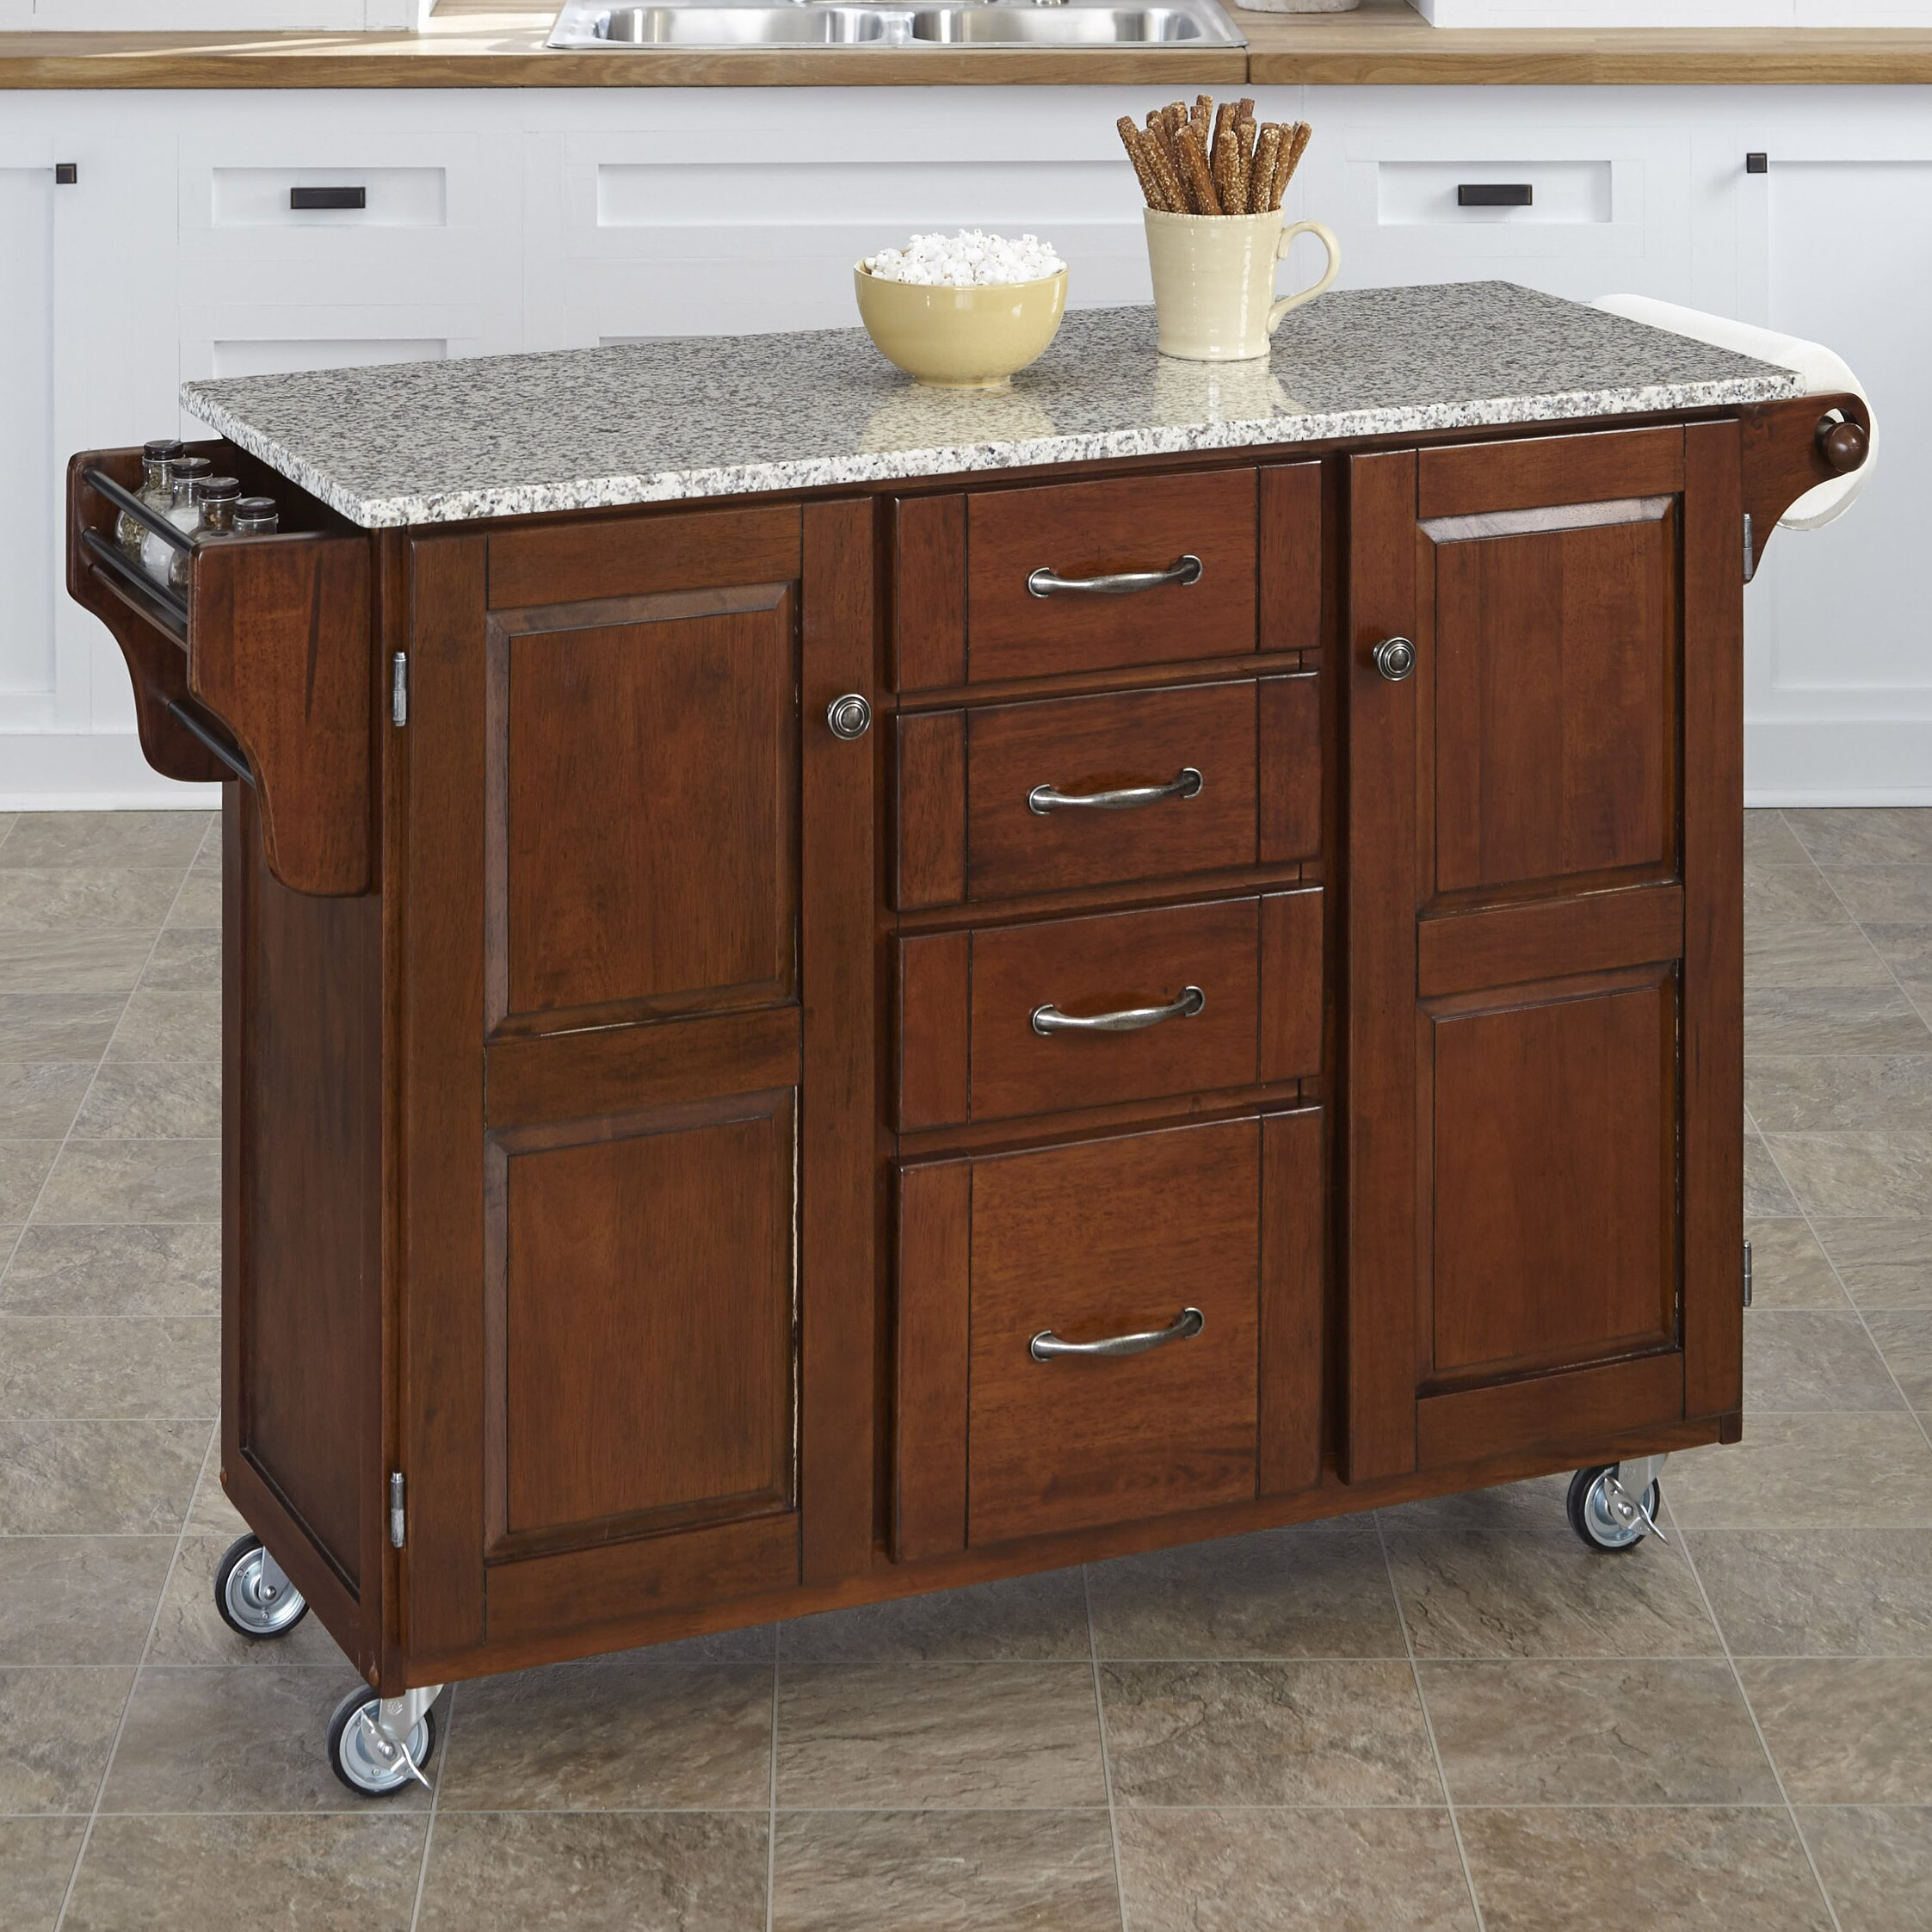 Kitchen Islands And: Home Styles Create-a-Cart Kitchen Island With Granite Top